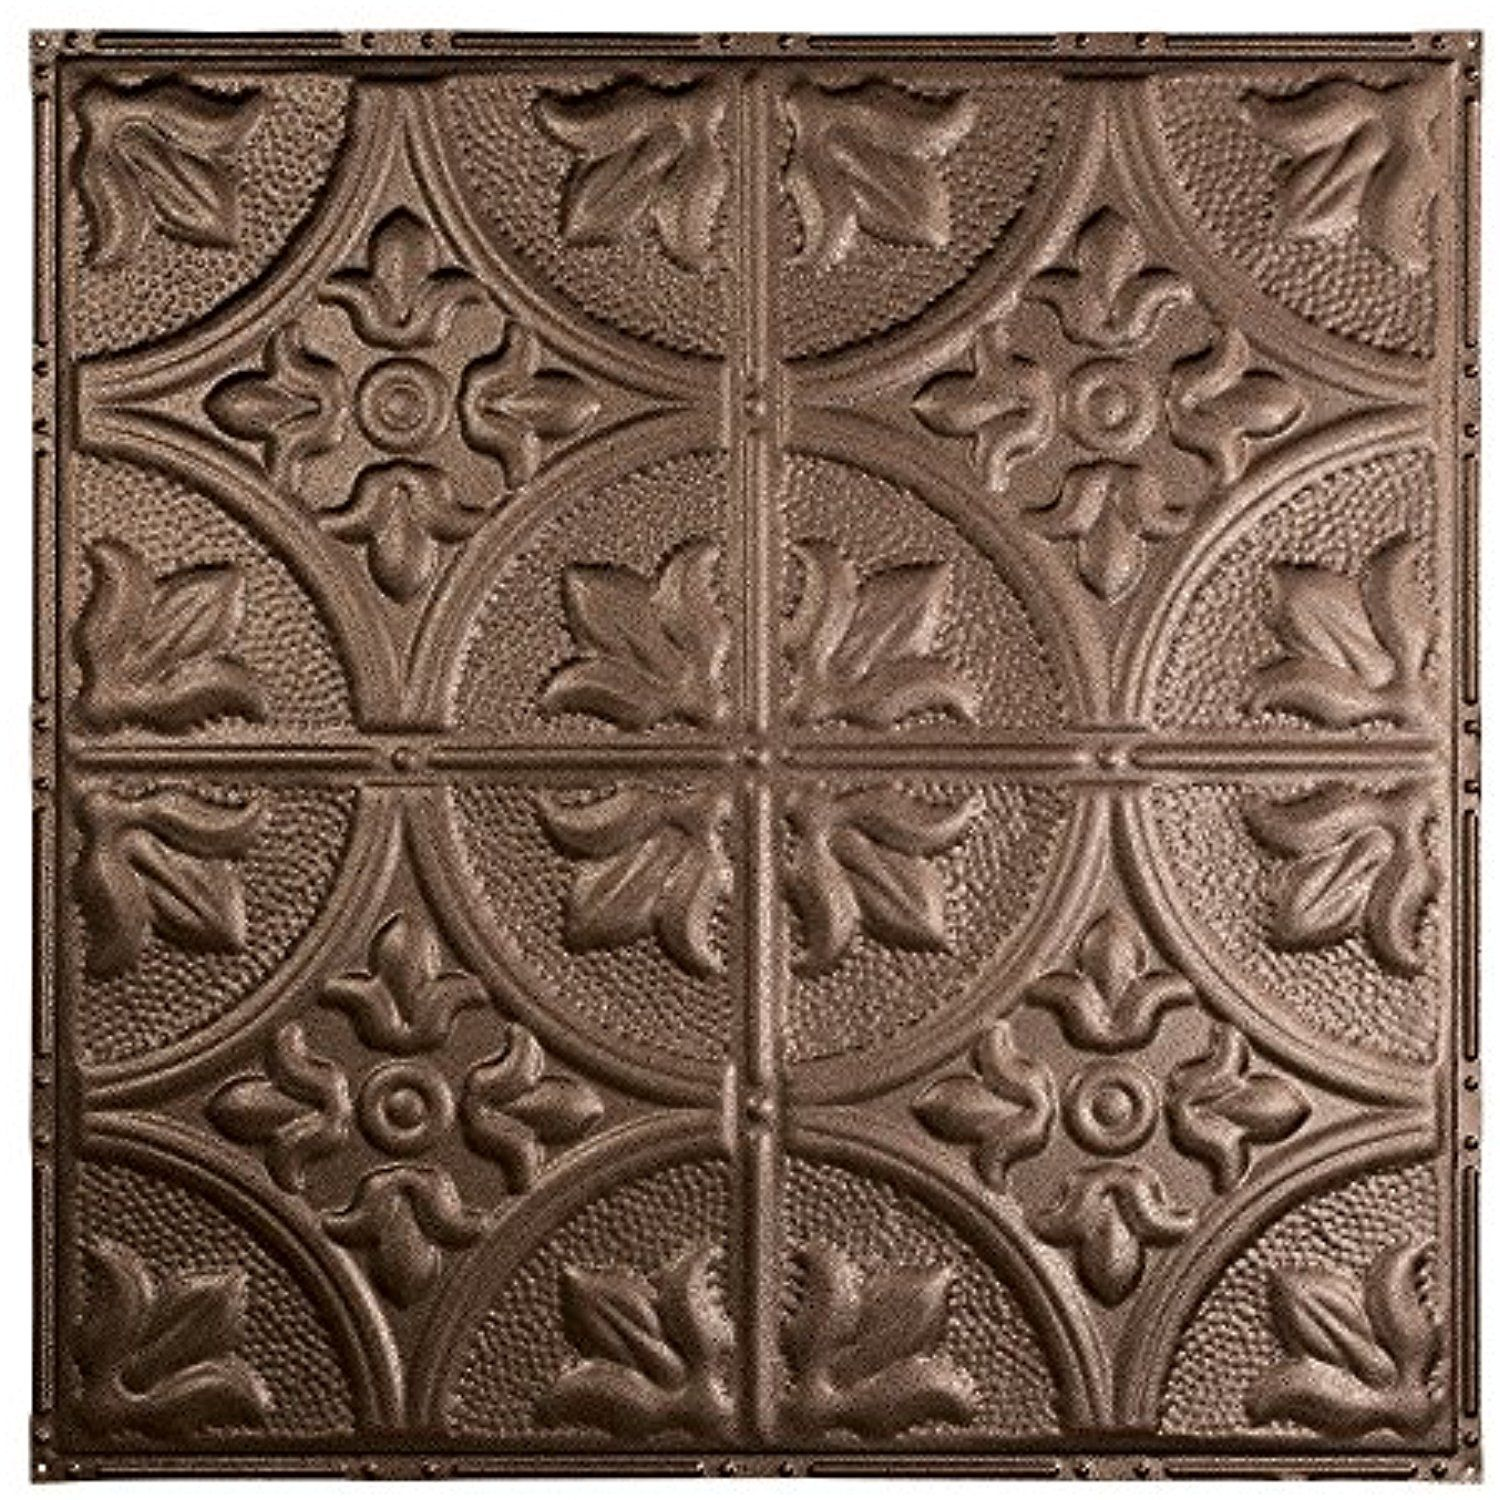 Great Lakes Tin Jamestown Penny Vein Nail Up Ceiling Tile 12 X 12 Sample For More Information Vi Tin Ceiling Metal Ceiling Tiles Tin Metal Ceiling Tiles